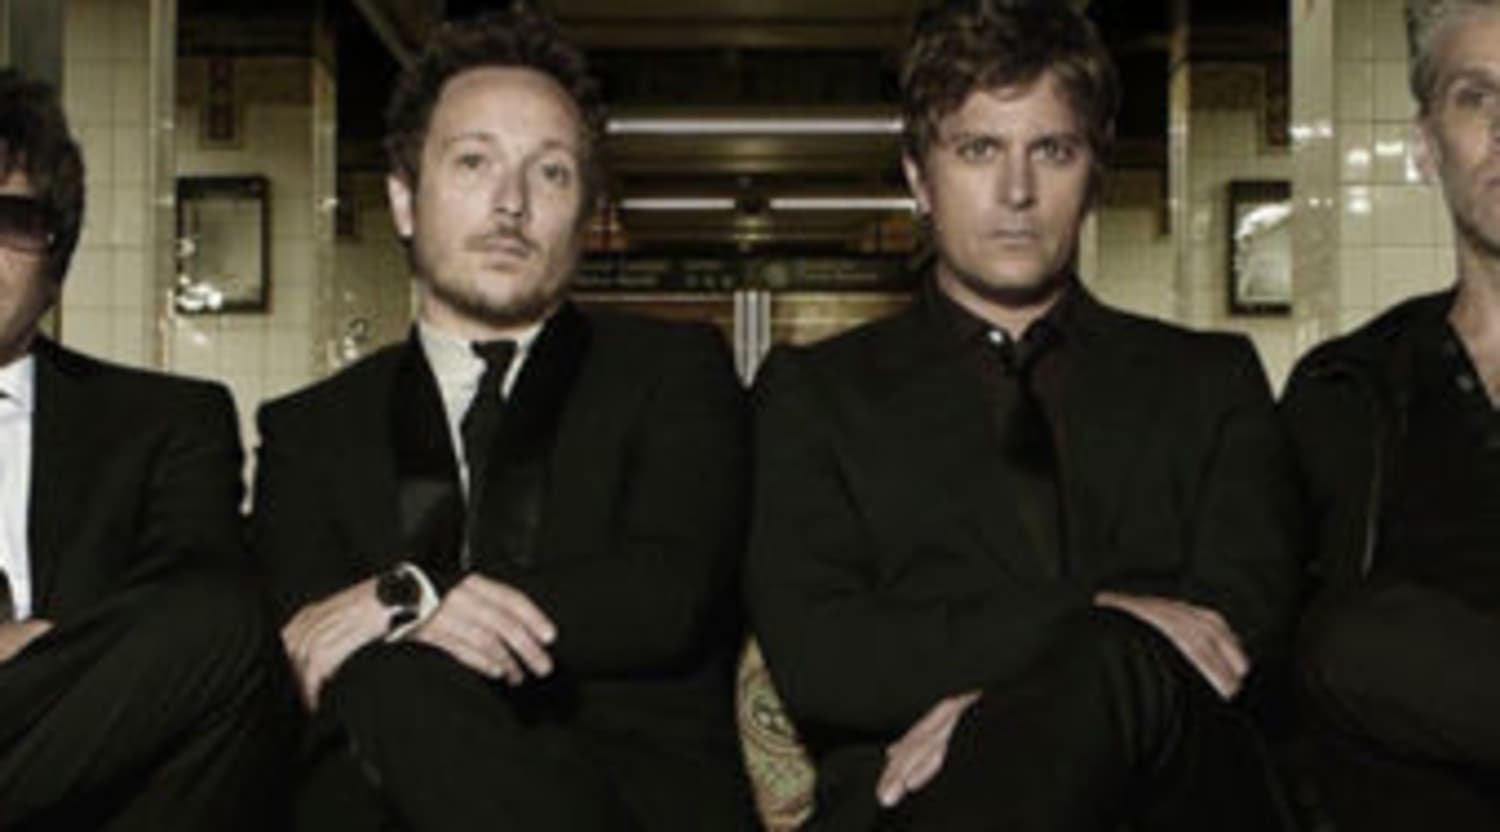 Matchbox 20 Tour 2020.Matchbox Twenty Tickets Matchbox Twenty Concert Tickets